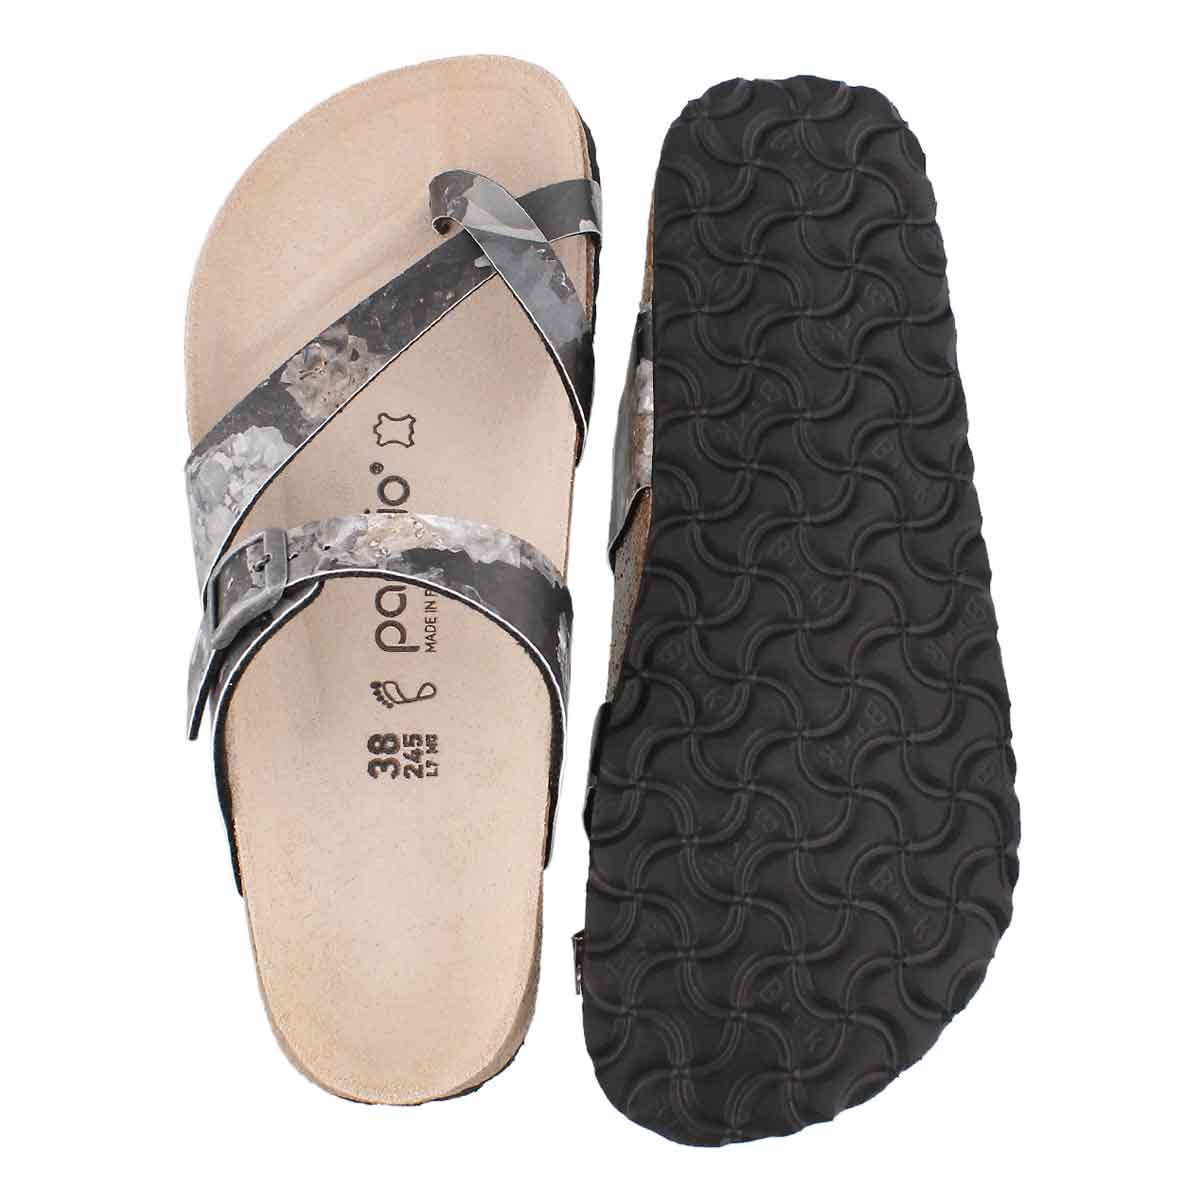 Lds Tabora BF cryst blk toe thong sndl